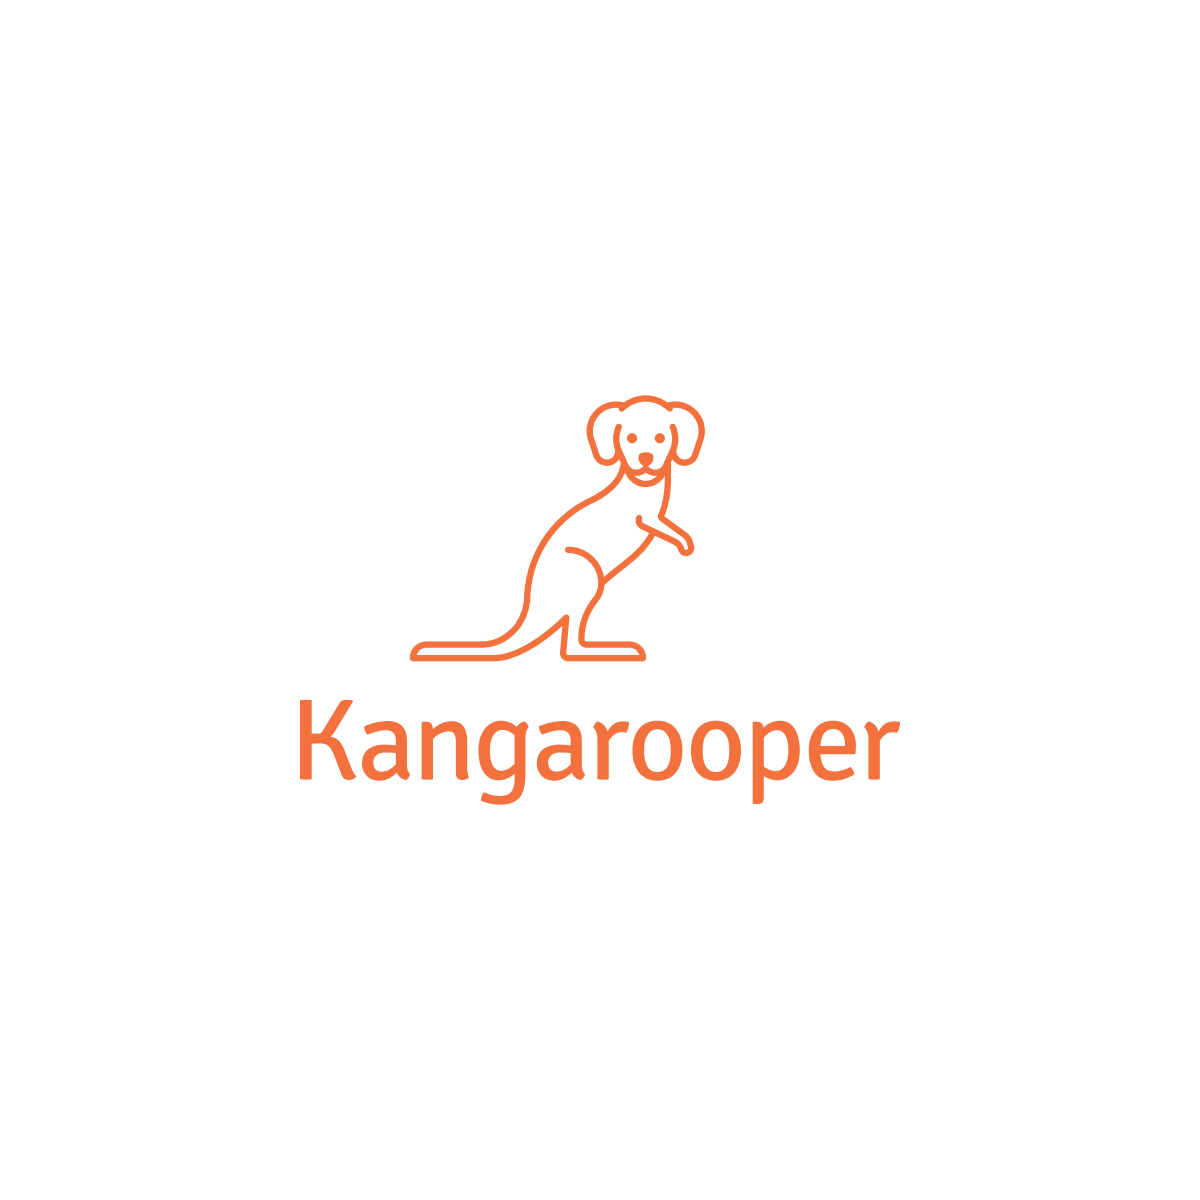 """""""Kangarooper"""" Logo for My Open Source Software Projects"""